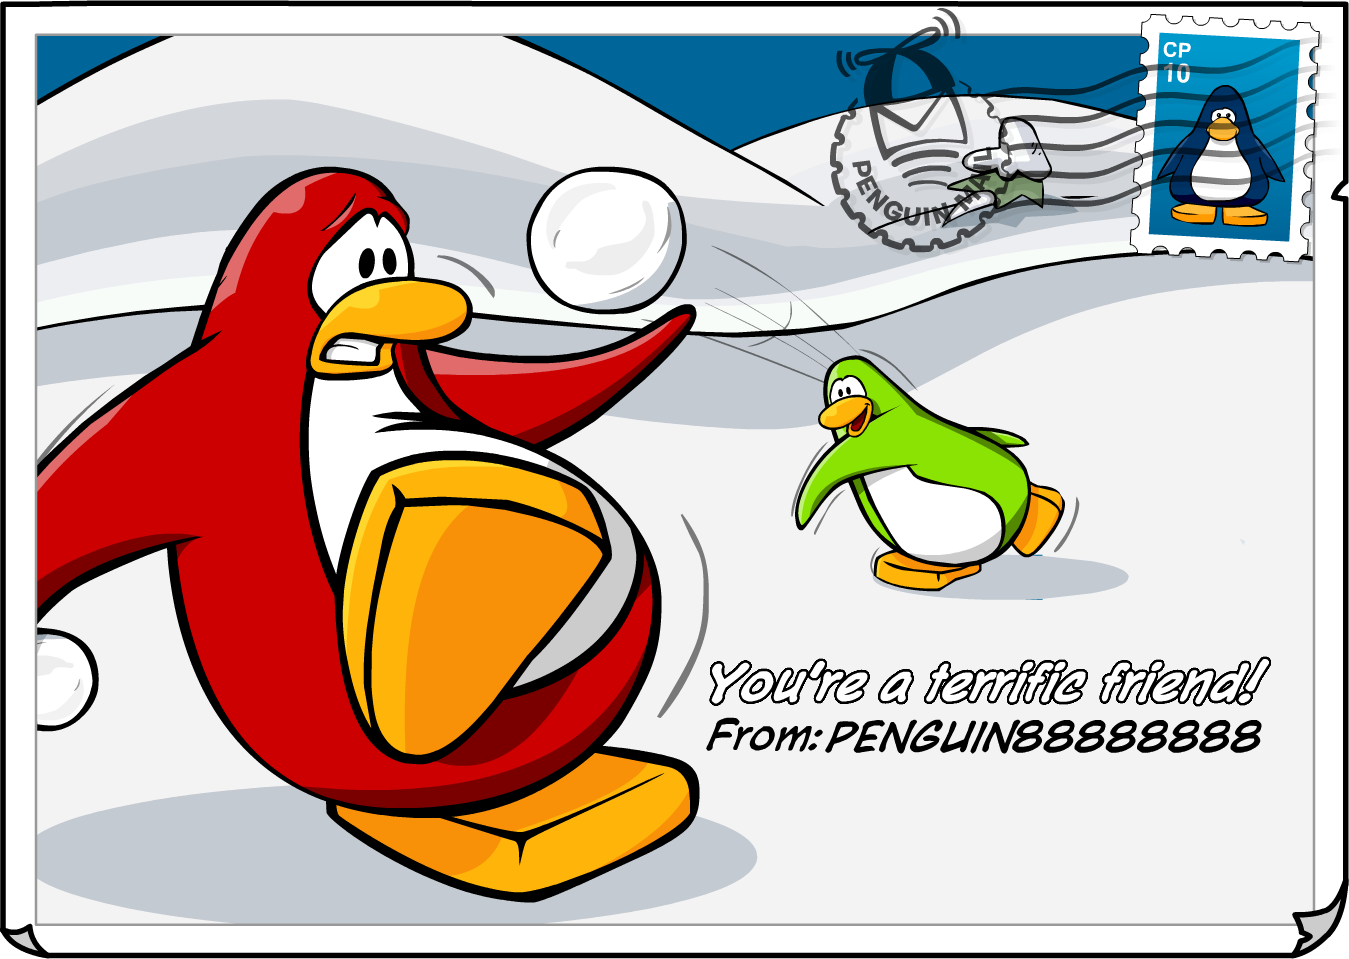 how to change penguin name in club penguin